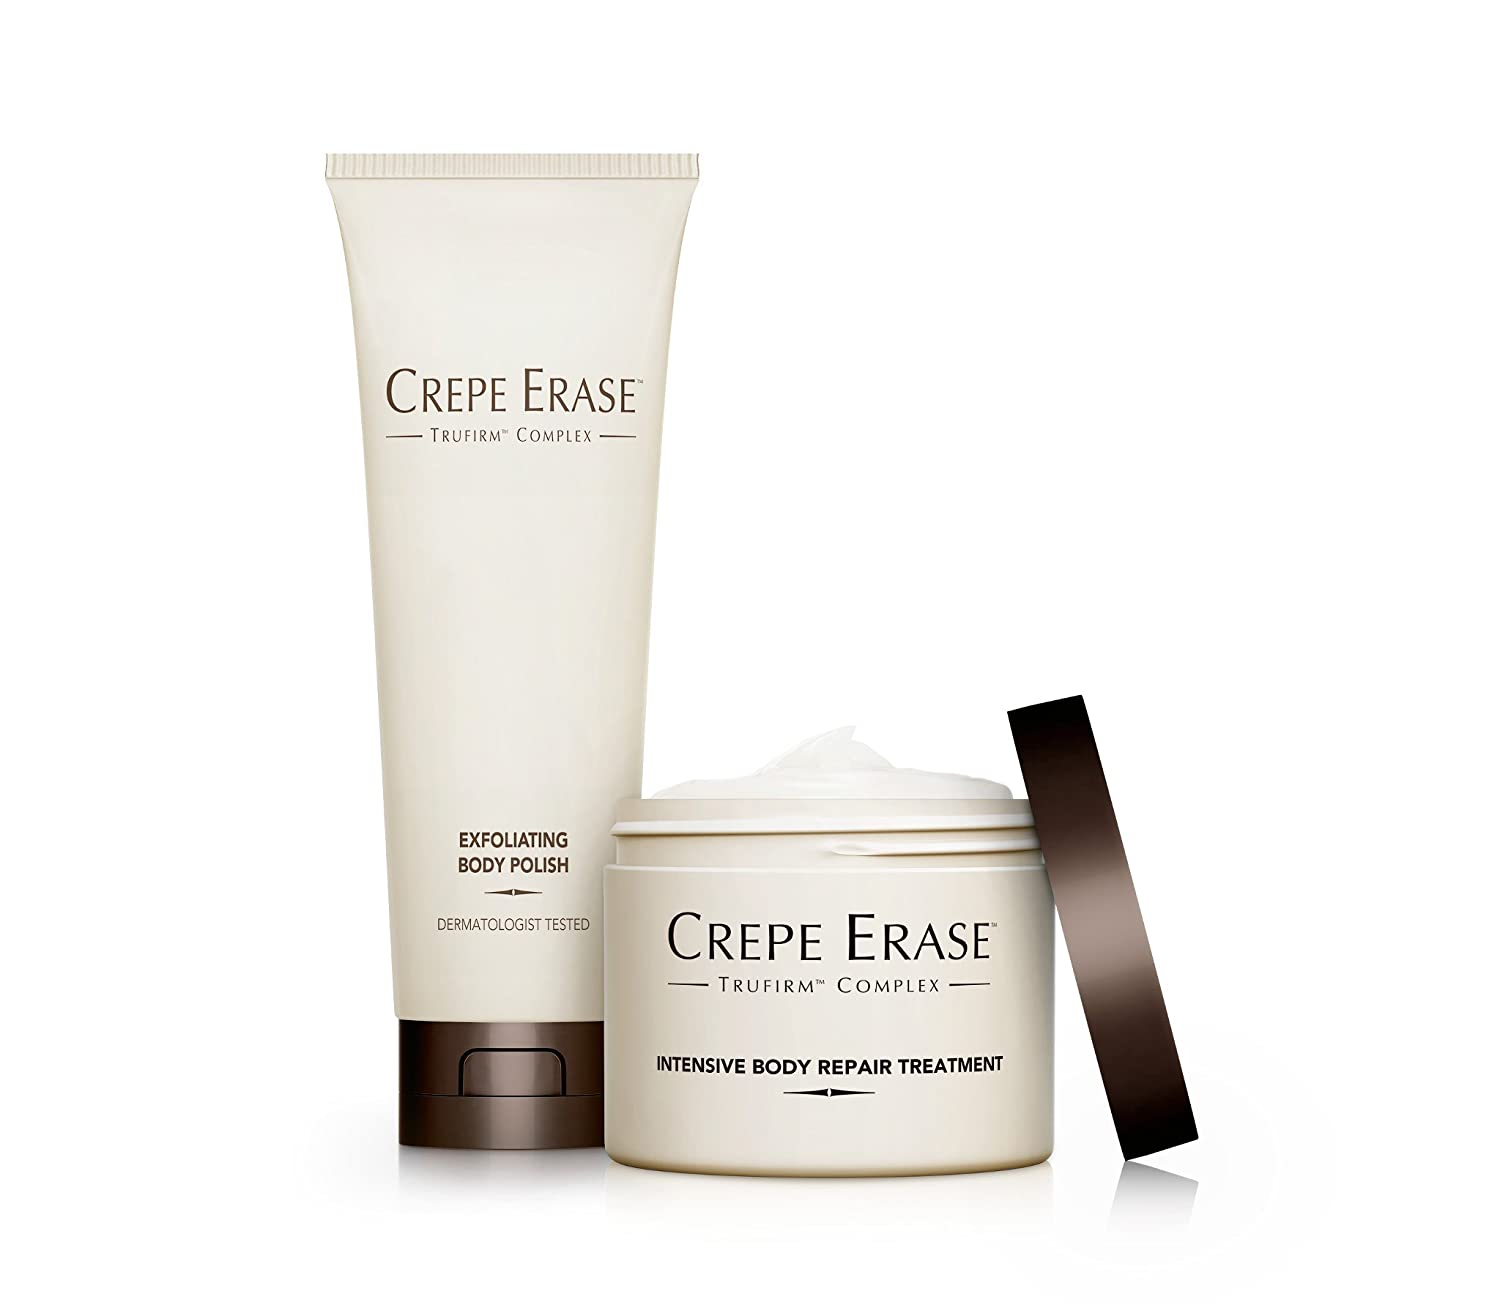 Crepe Erase – Full Size Body Duo – Nourishing and Hydrating System with TruFirm Complex – Intensive Body Repair Treatment and Exfoliating Body Polish – CS.2003 Guthy Renker - Crepe Erase